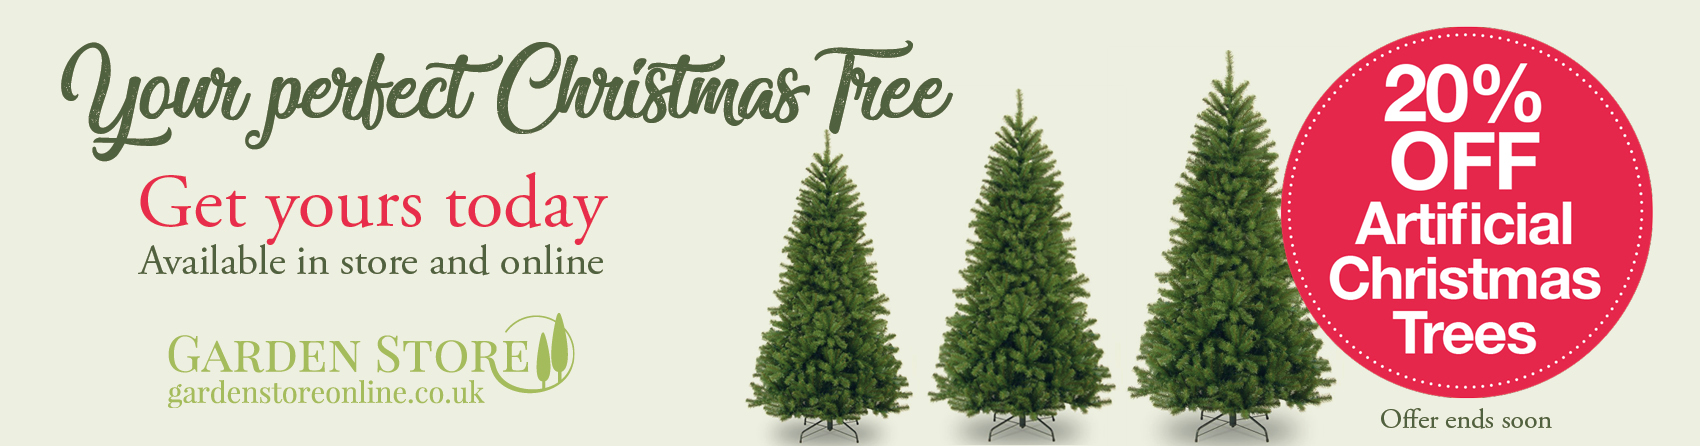 20% OFF Artificial Christmas Trees